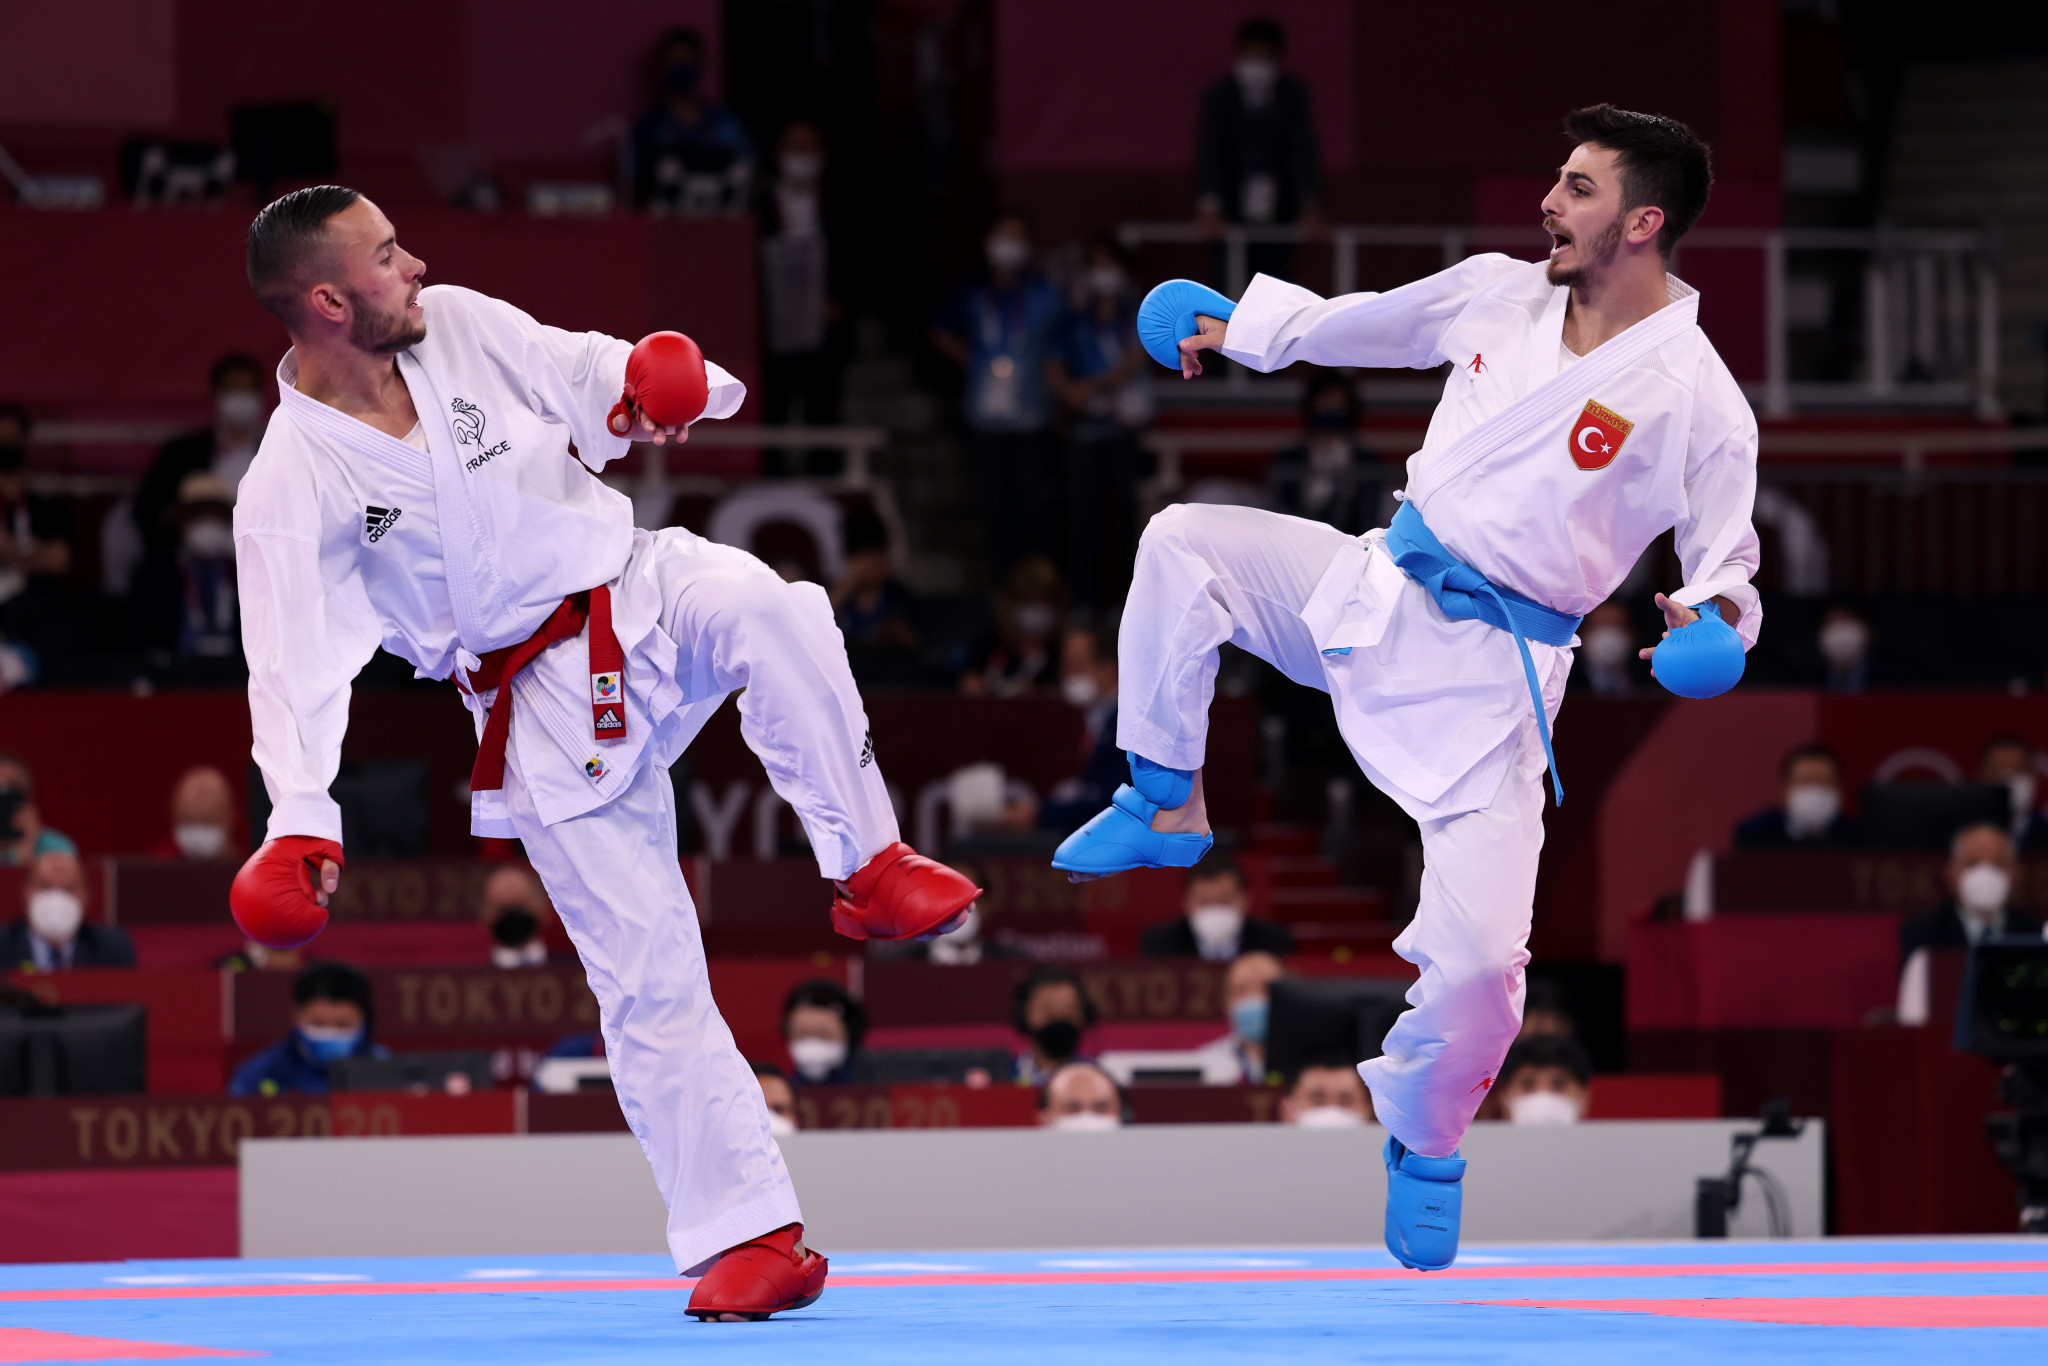 French politicians join call for karate to feature at Paris 2024 but organisers say sport programme is final